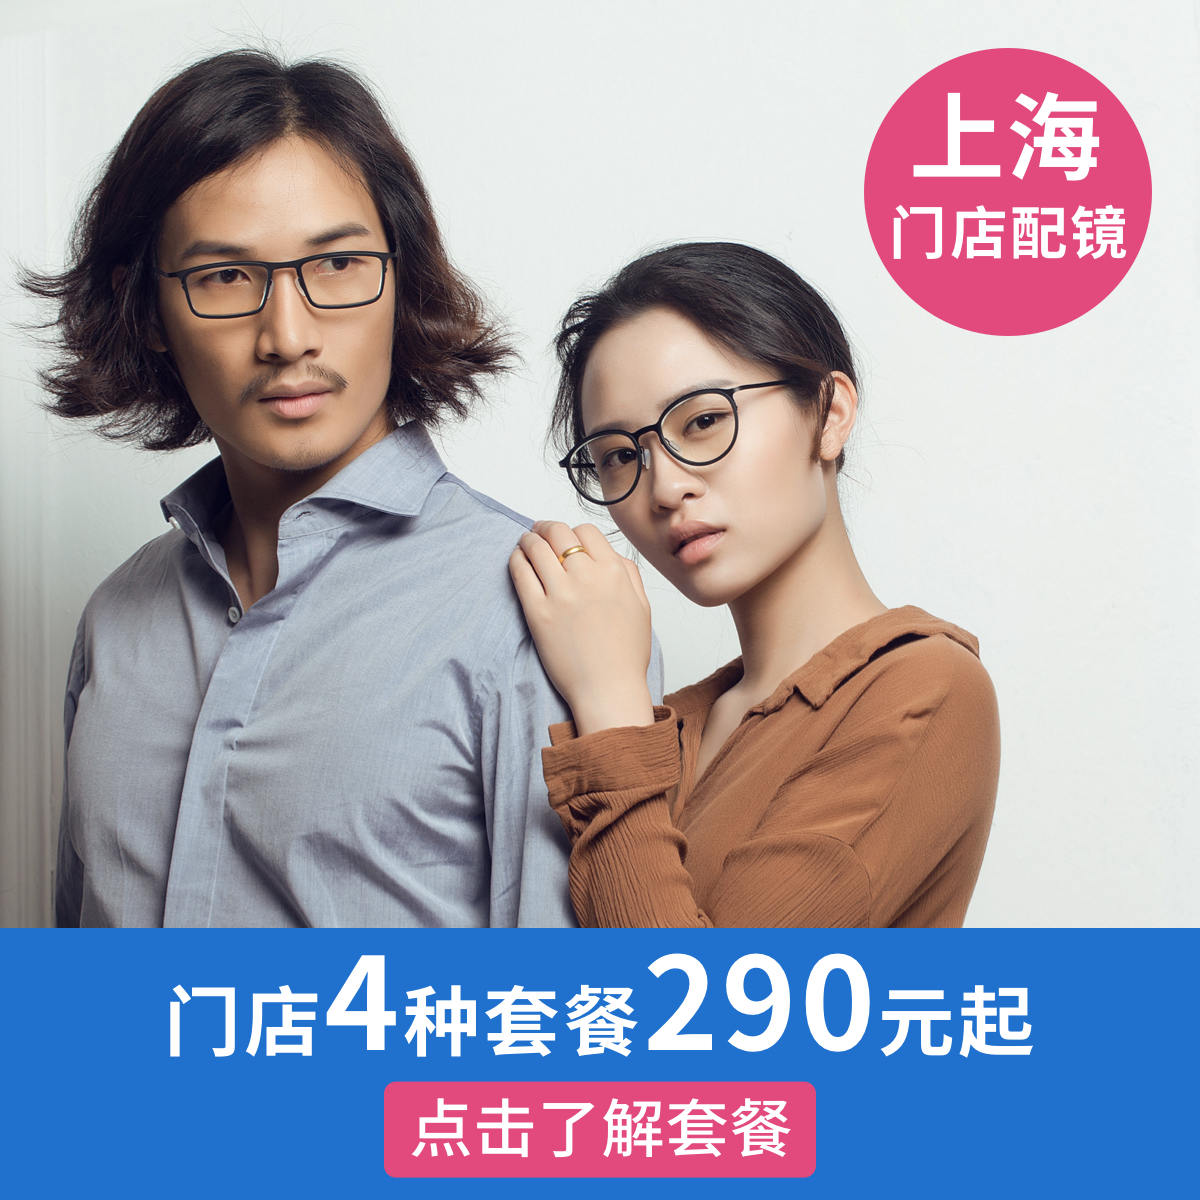 PQ Shanghai glasses physical shop with glasses, myopia, frame lens, sunglasses and astigmatism optometry service